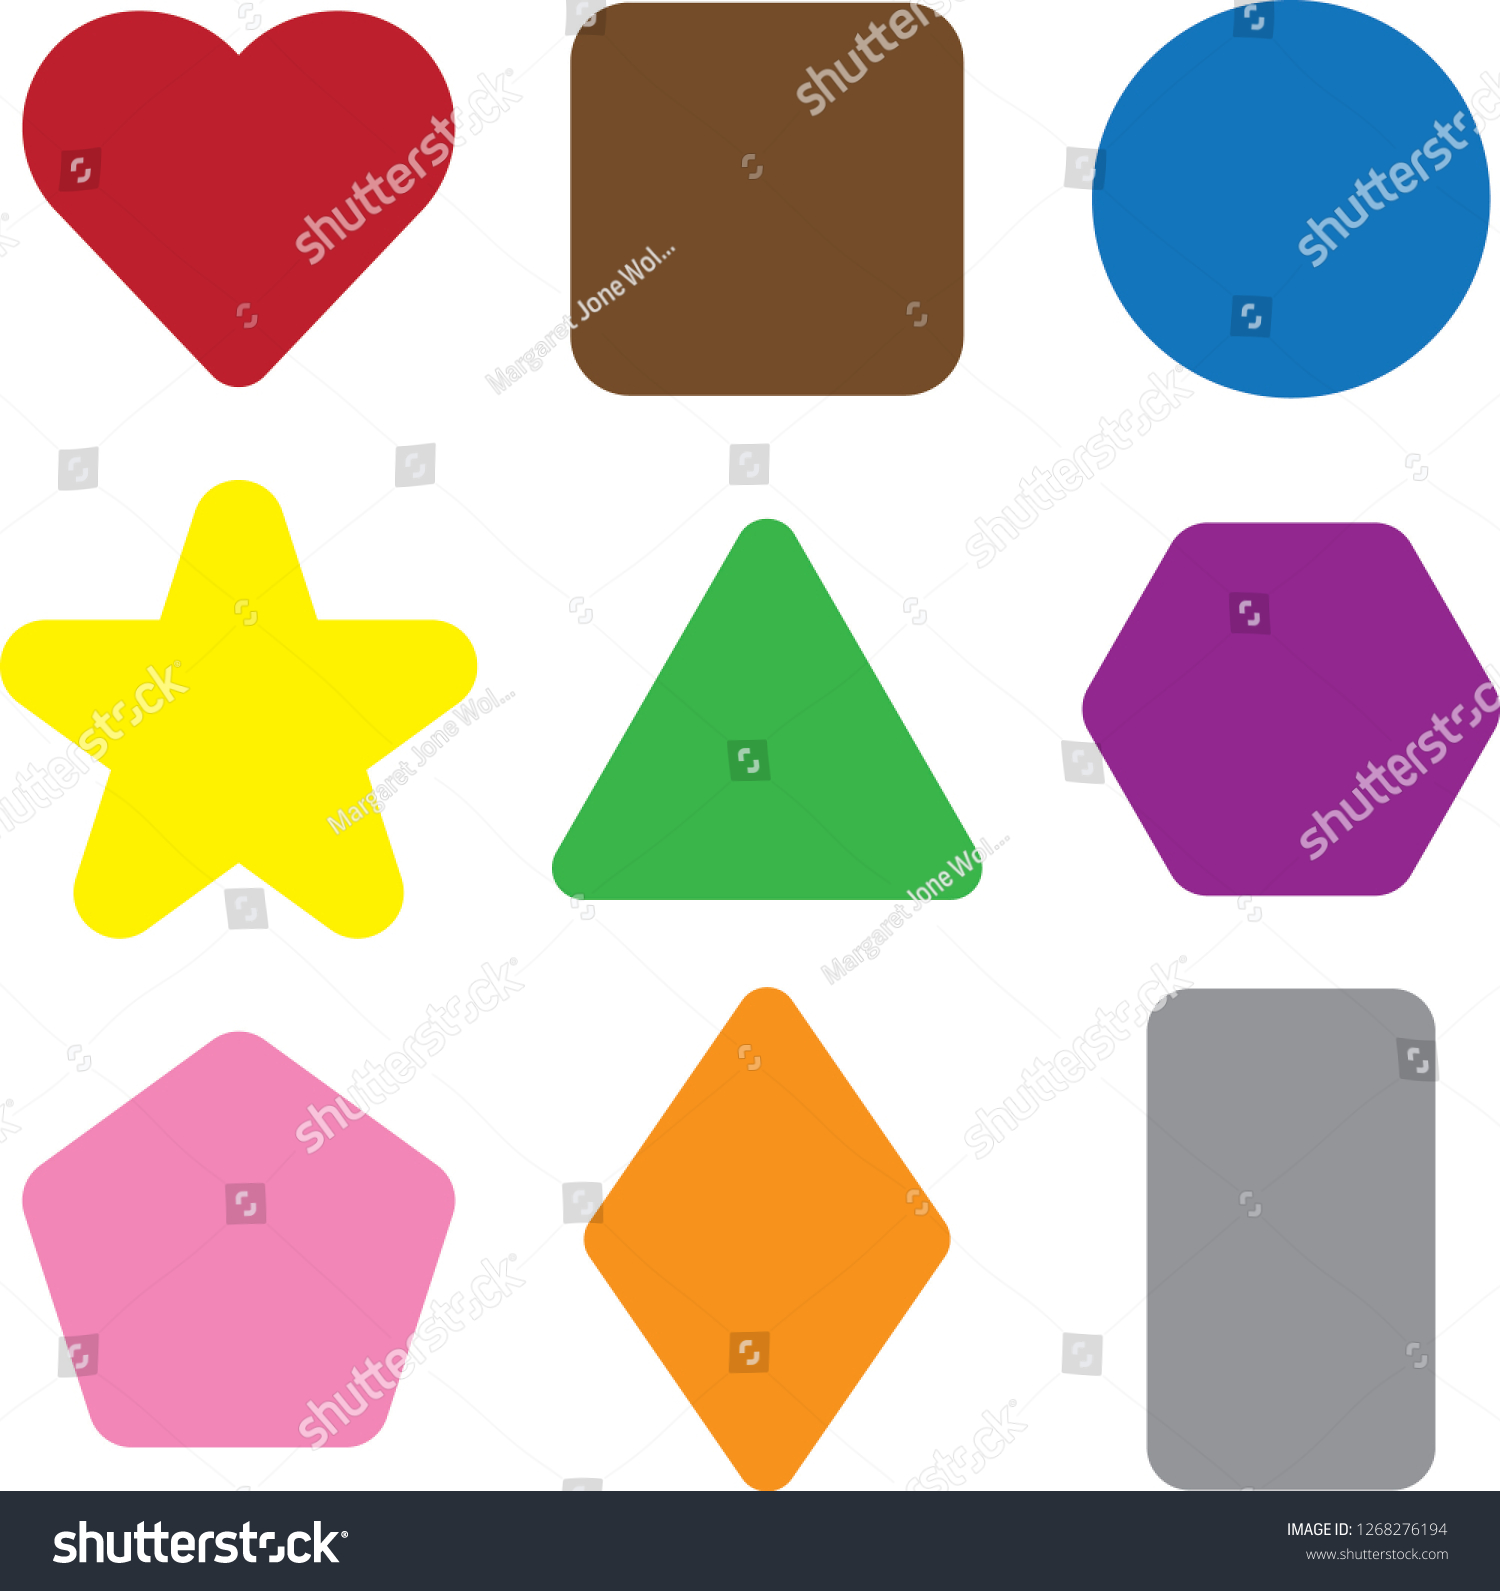 Basic Shapes Different Colors Education Clipart Stock Vector.